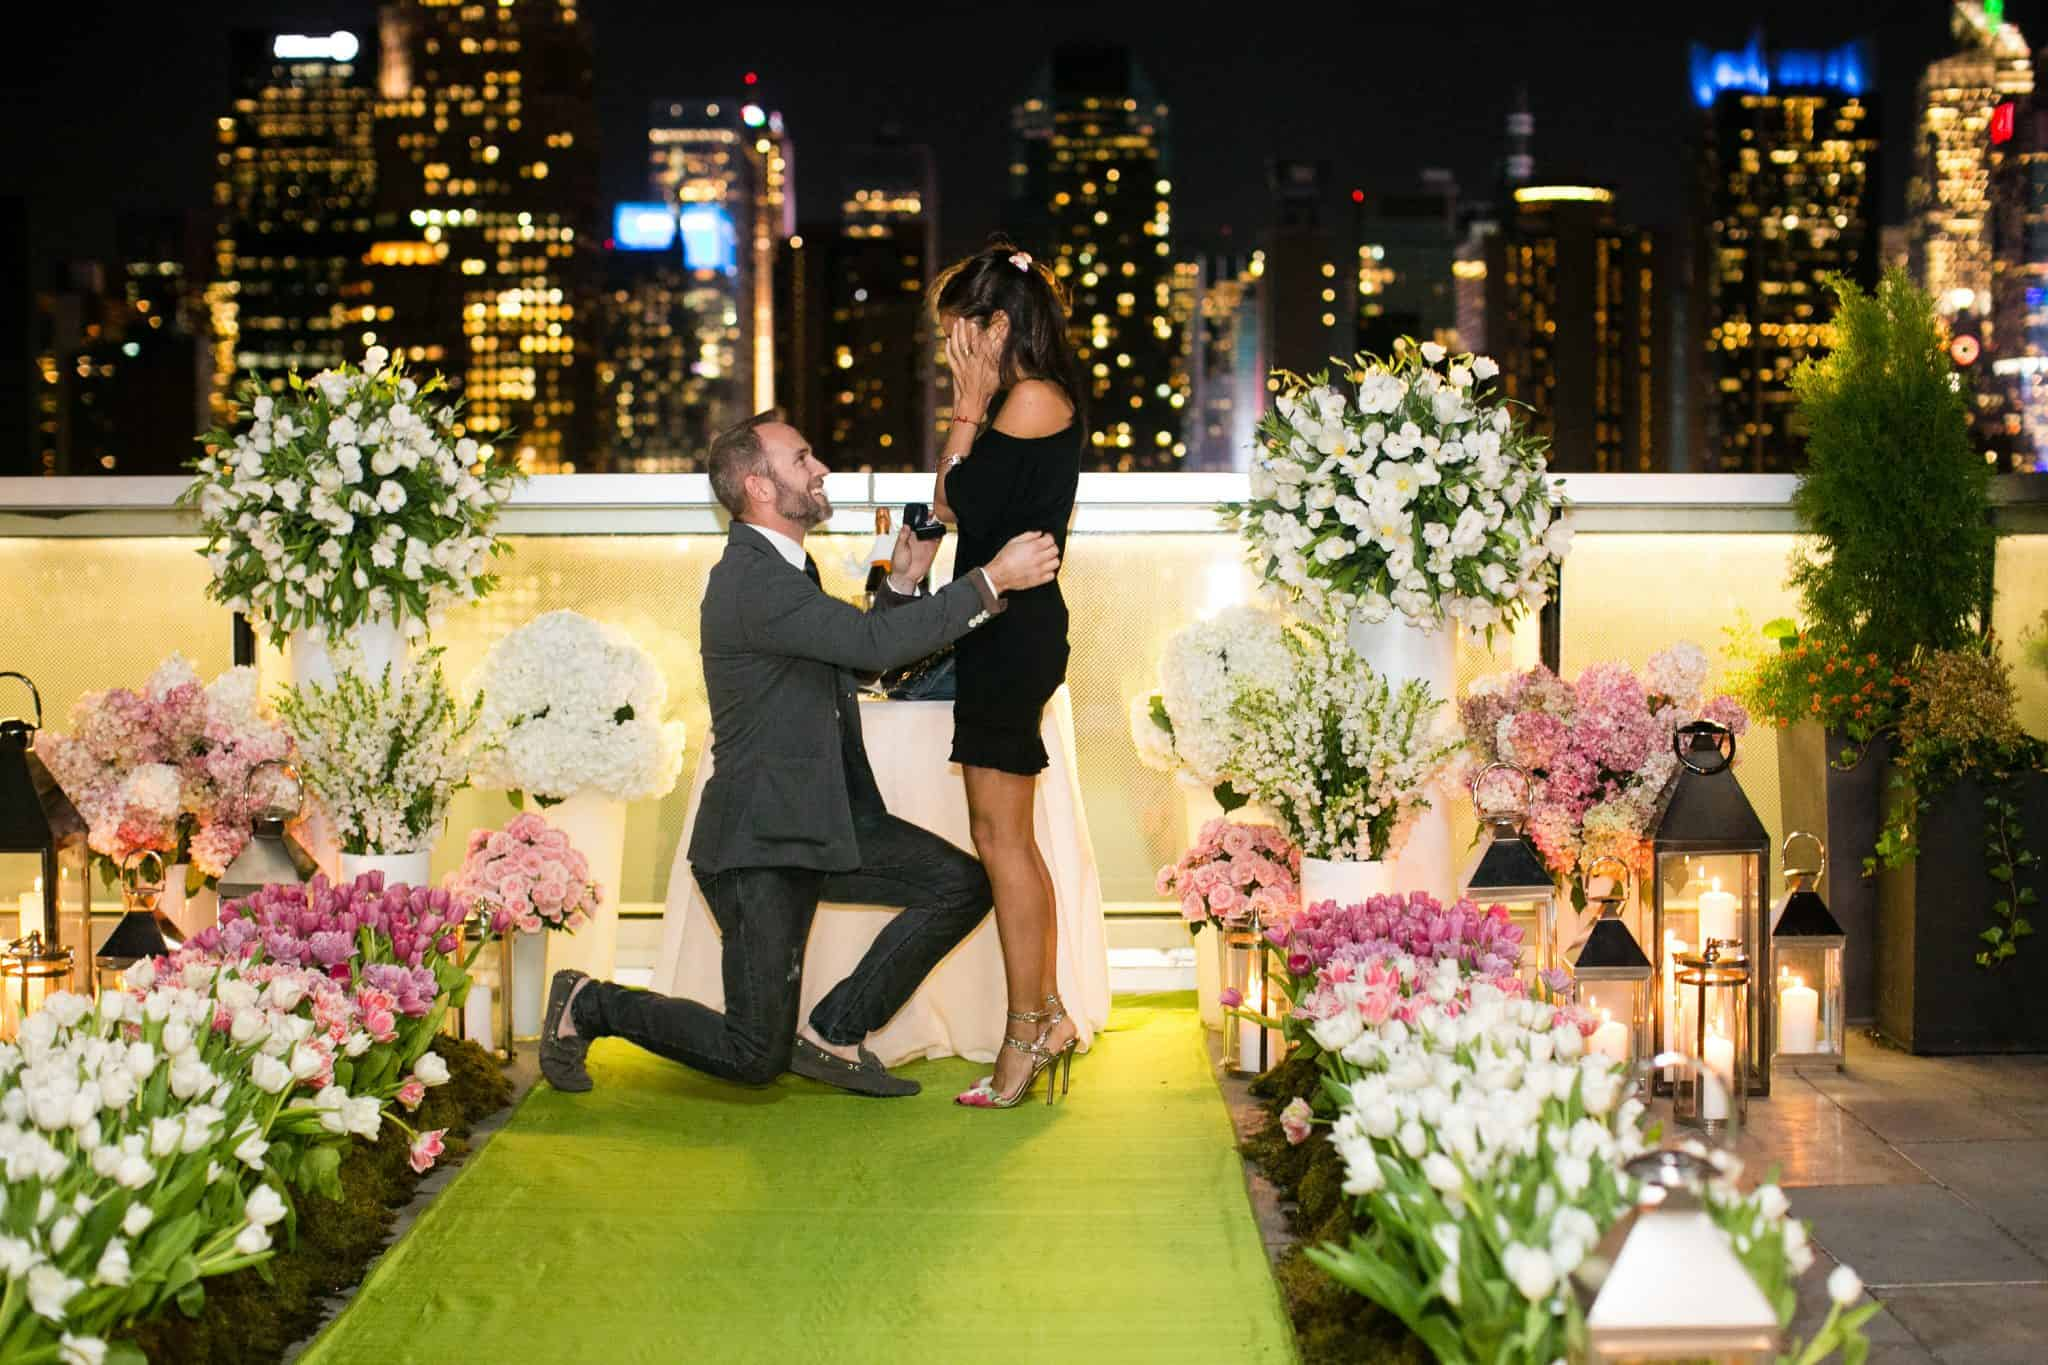 rooftop-new-york-marriage-proposal